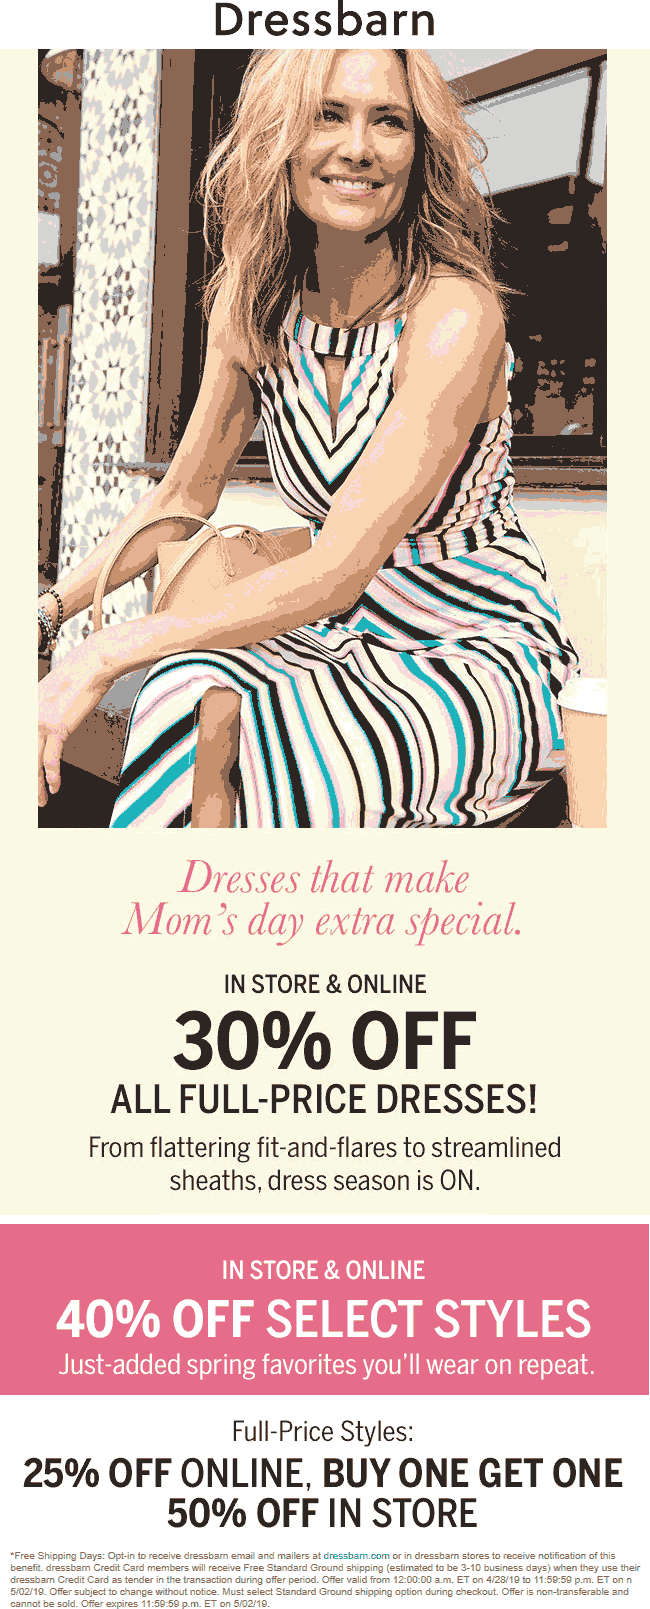 Dressbarn Coupon July 2019 30% off dresses & more at Dressbarn, ditto online